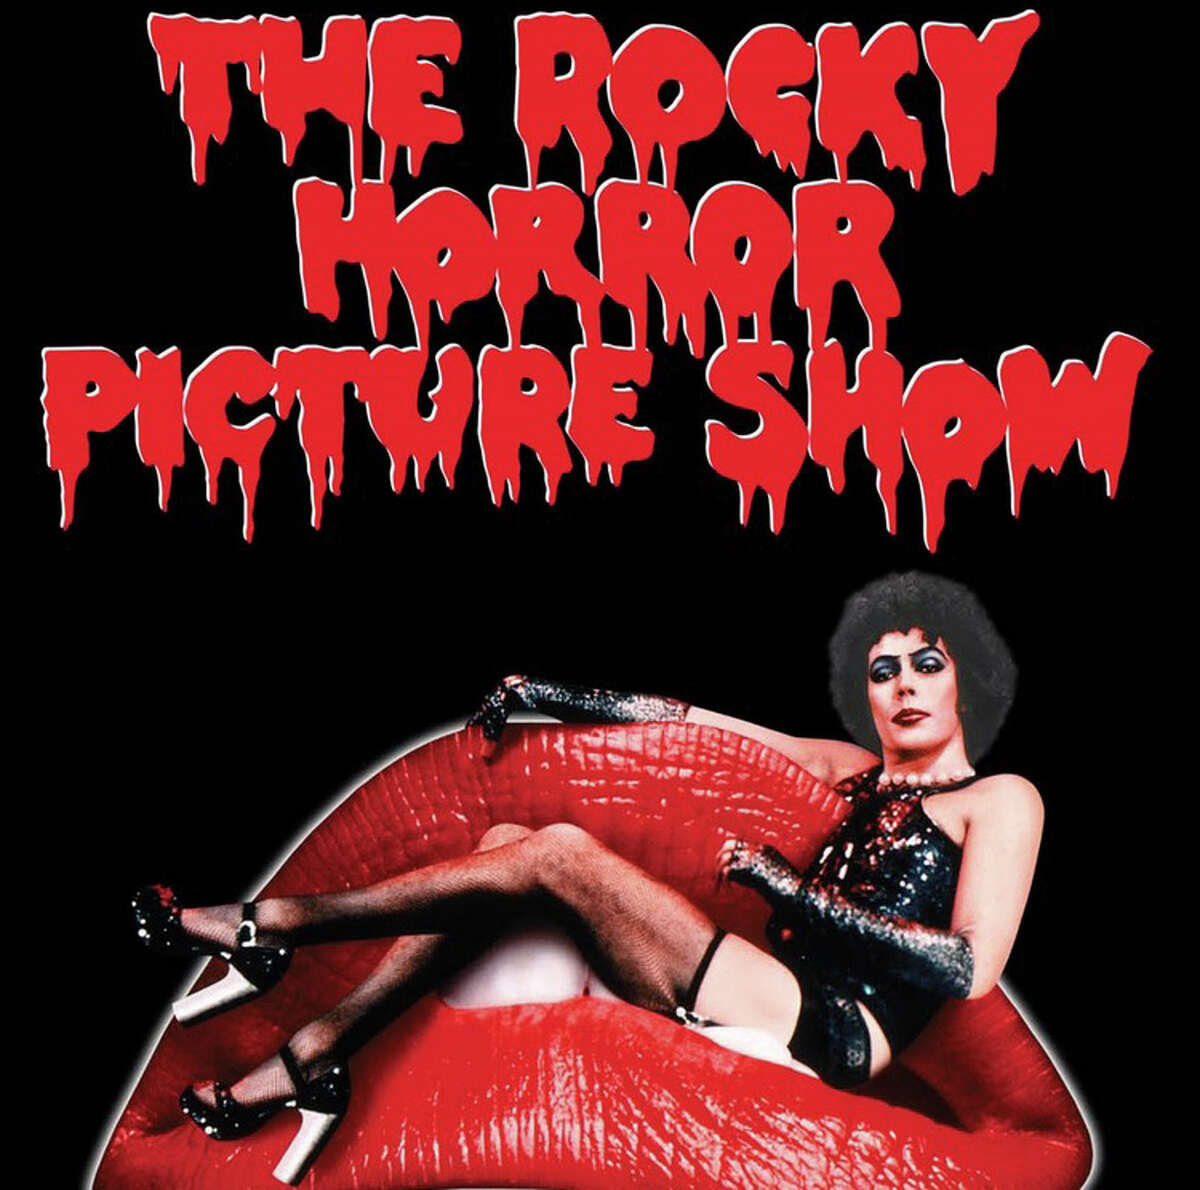 Rocky Horror Picture Show, The Palace, Danbury October 25, 2019 Rocky Horror Picture Show is not just a movie, it's a total experience featuring plenty of audience participation with props and audience shouts. Find out more.